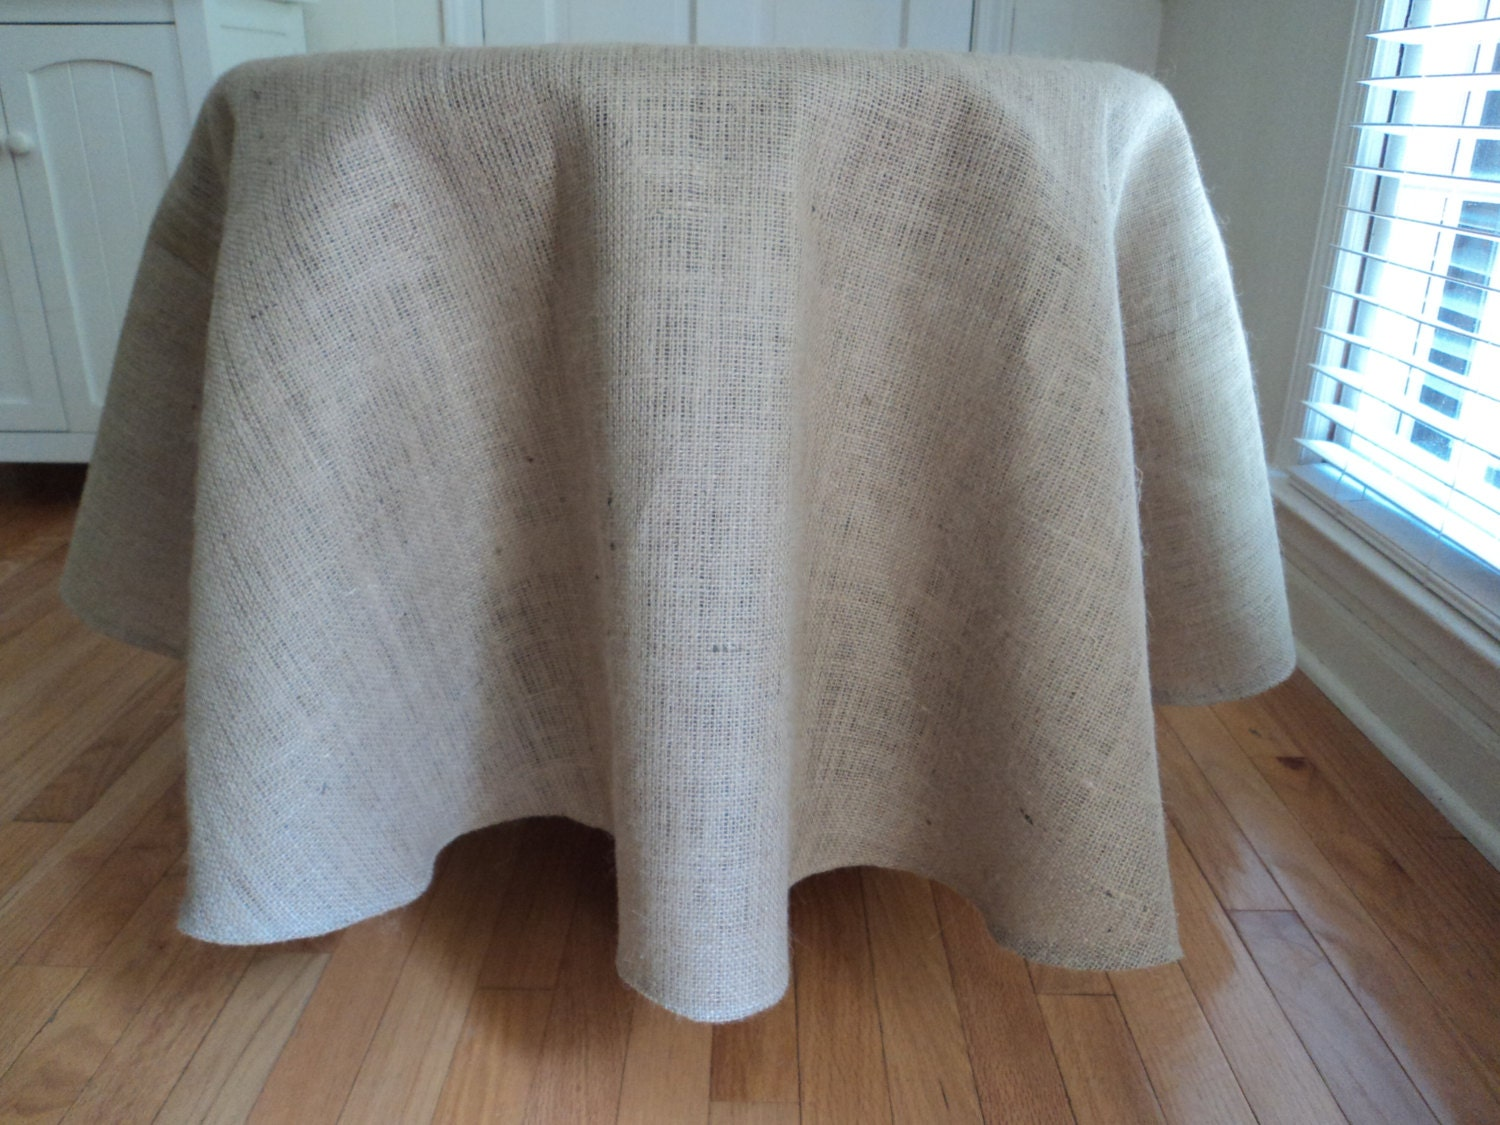 Burlap Tablecloth Round Round Burlap Tablecloth 70 To. Round Burlap  Tablecloth 70. Source Abuse Report